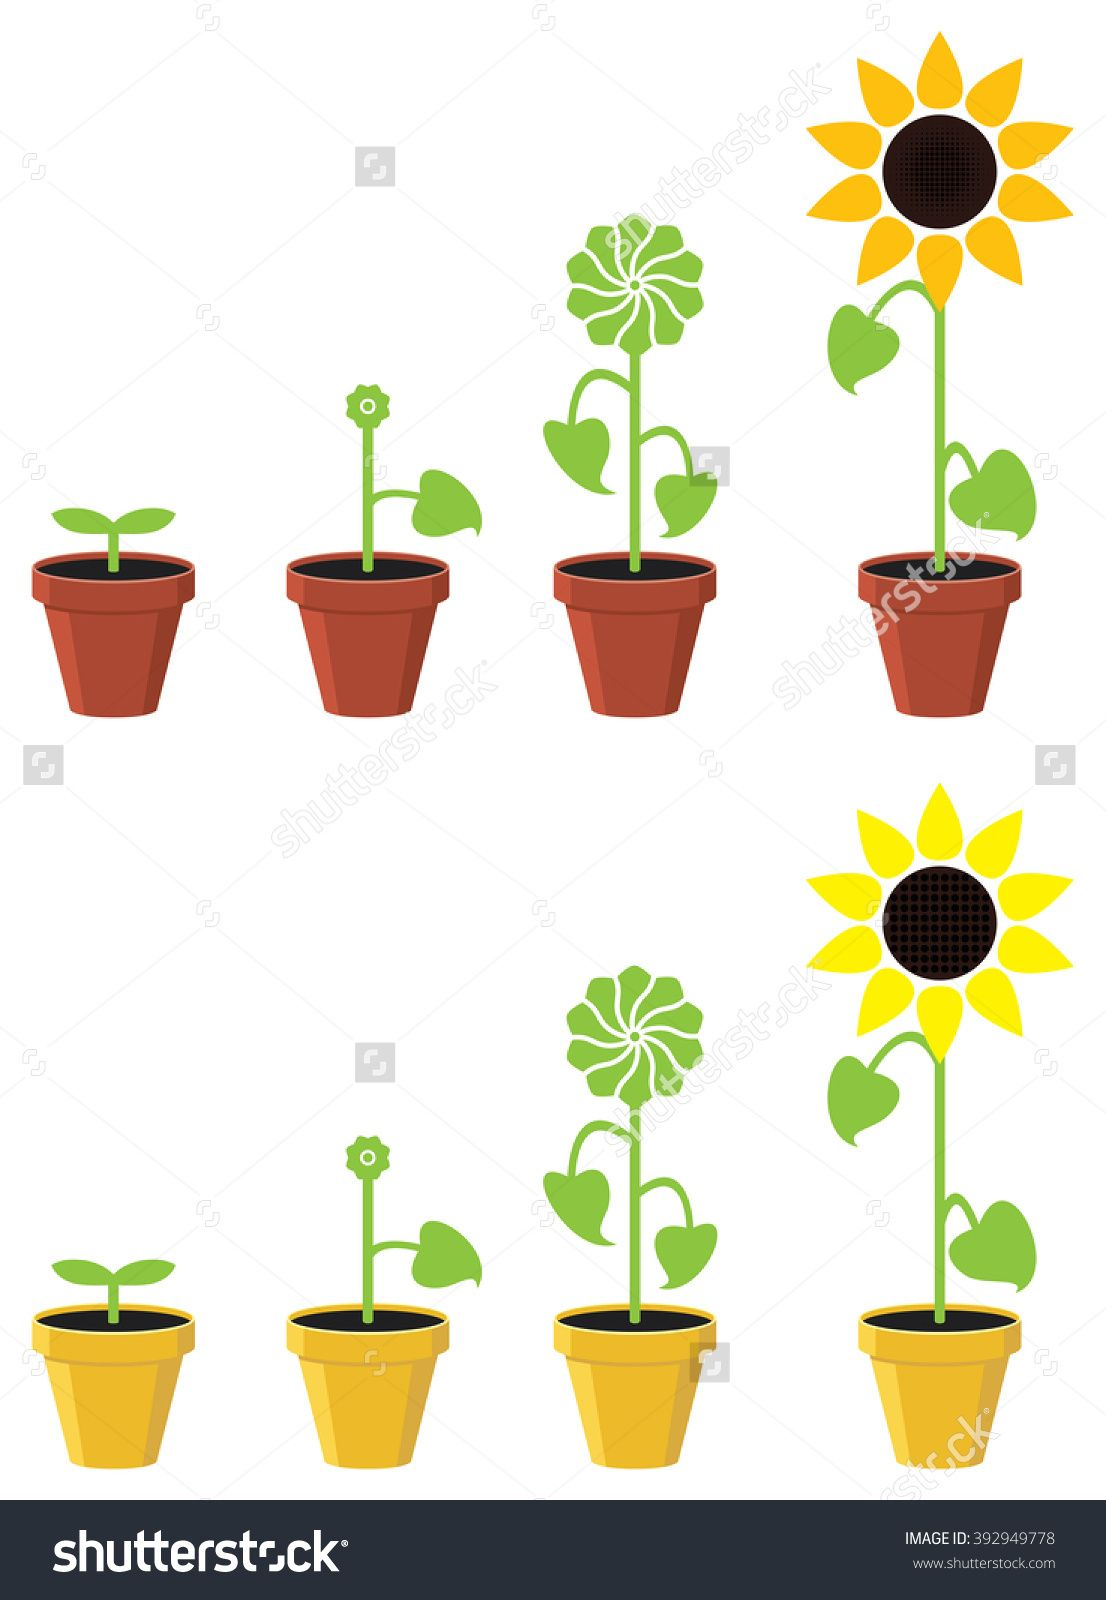 vector transparent download Growth stages concept . Vector sunflower plant.